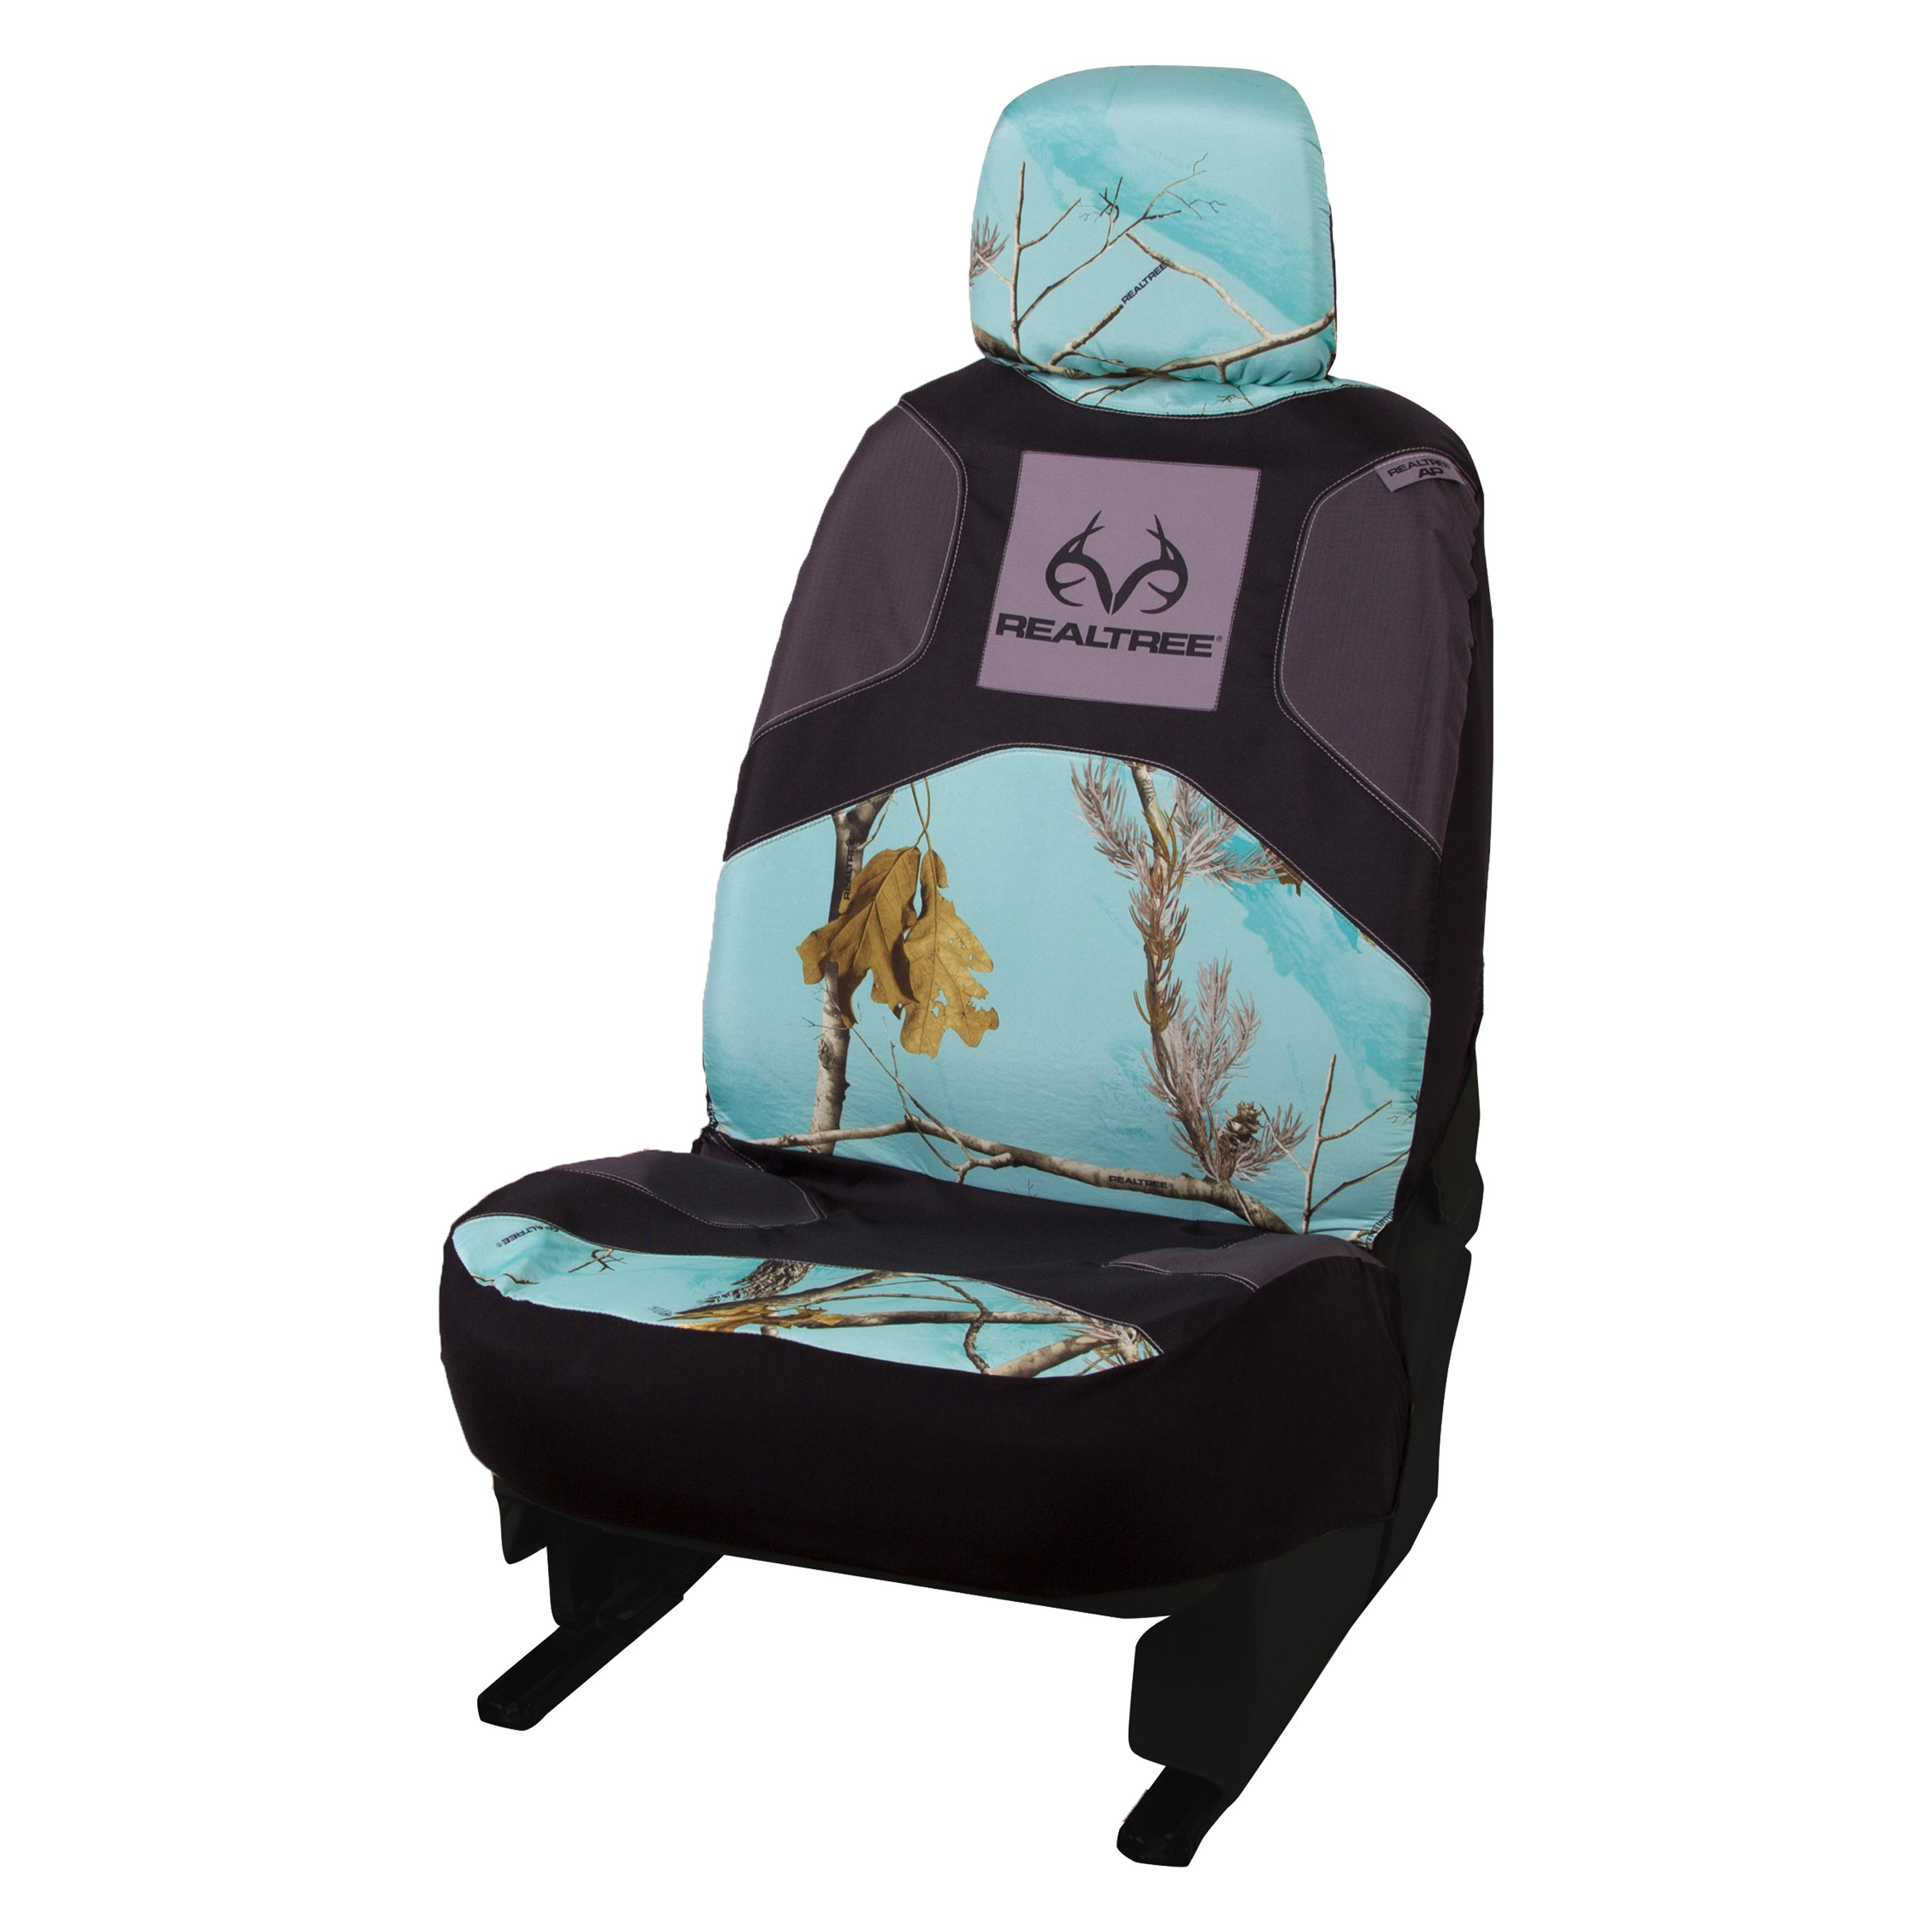 Teal Camo Car Seat Covers Velcromag